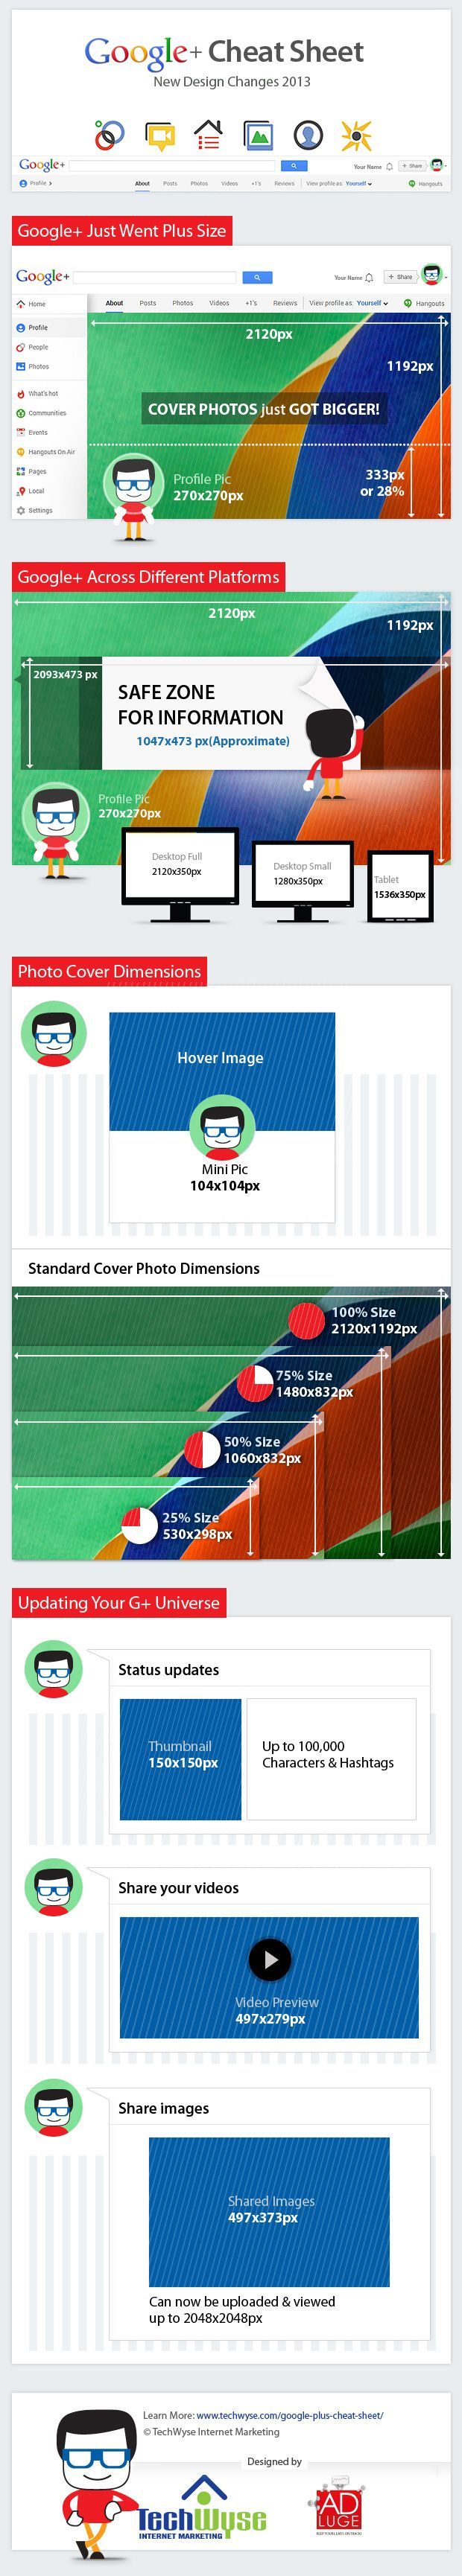 Google+ Dimensions Cheat Sheet